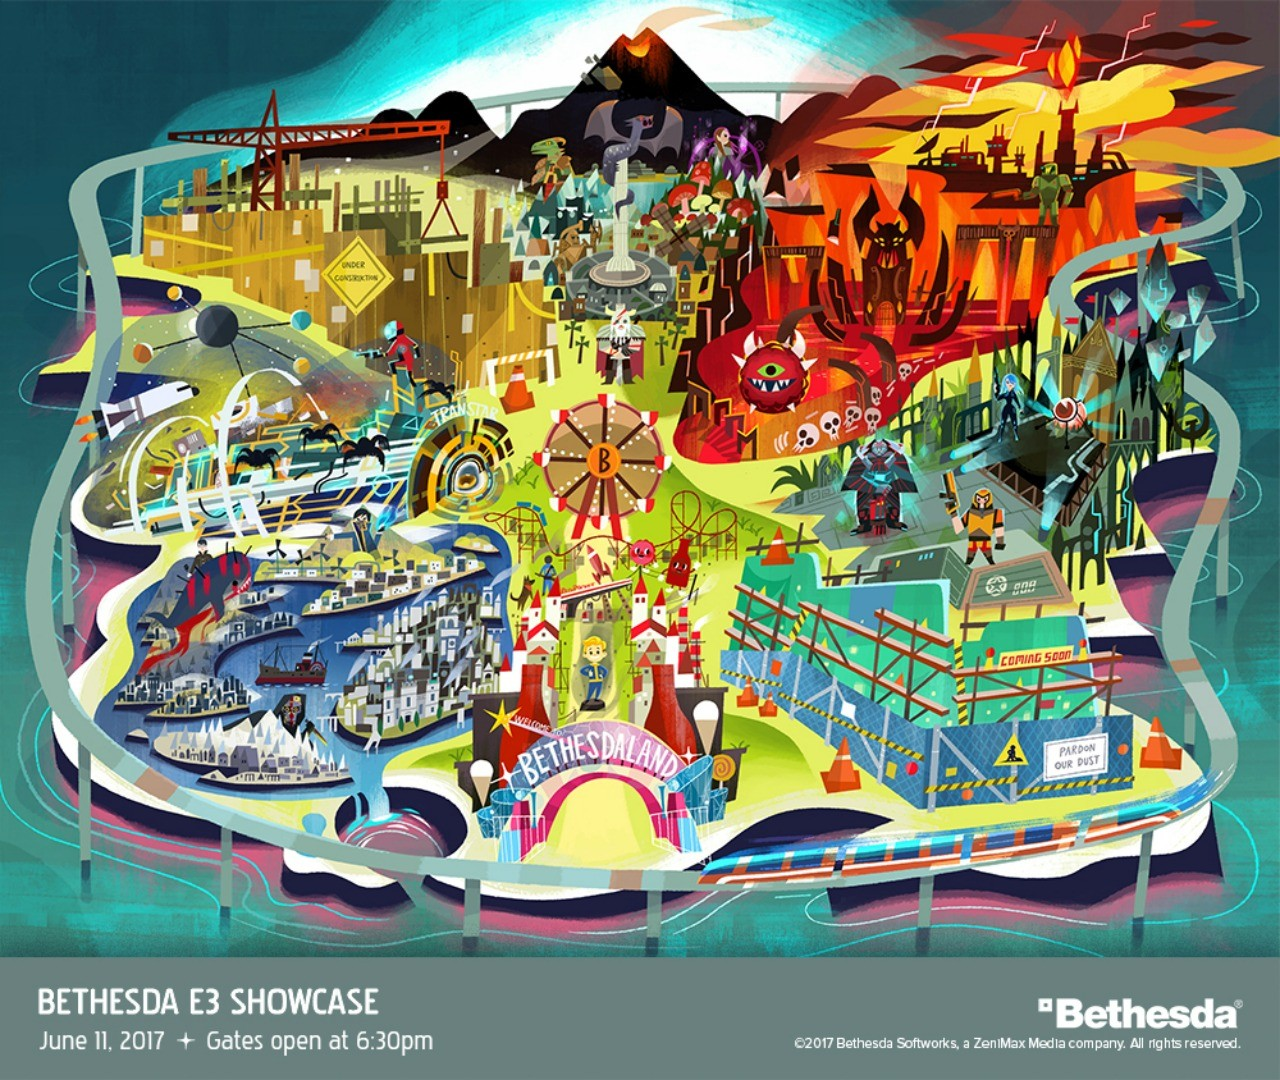 Bethesda E3 Art Teases New Games In Development